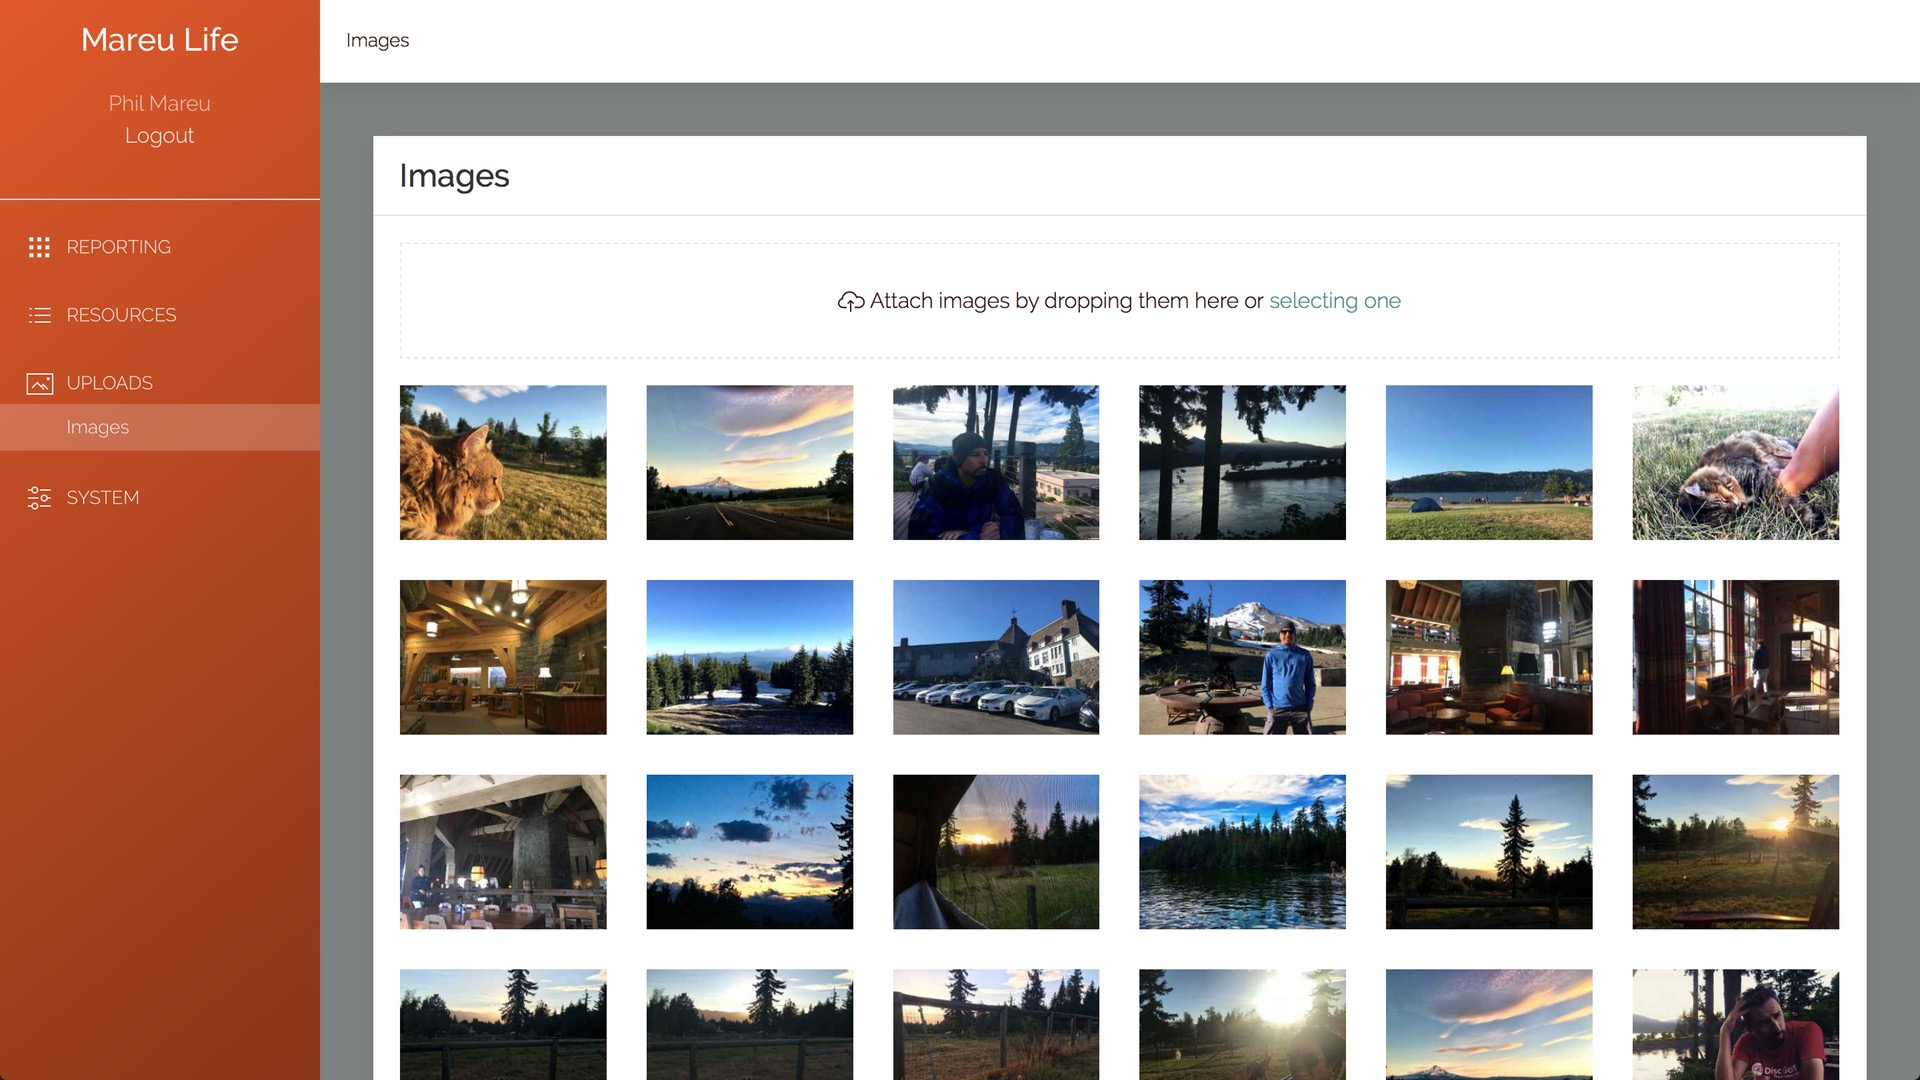 Laramanager images section populated with example images